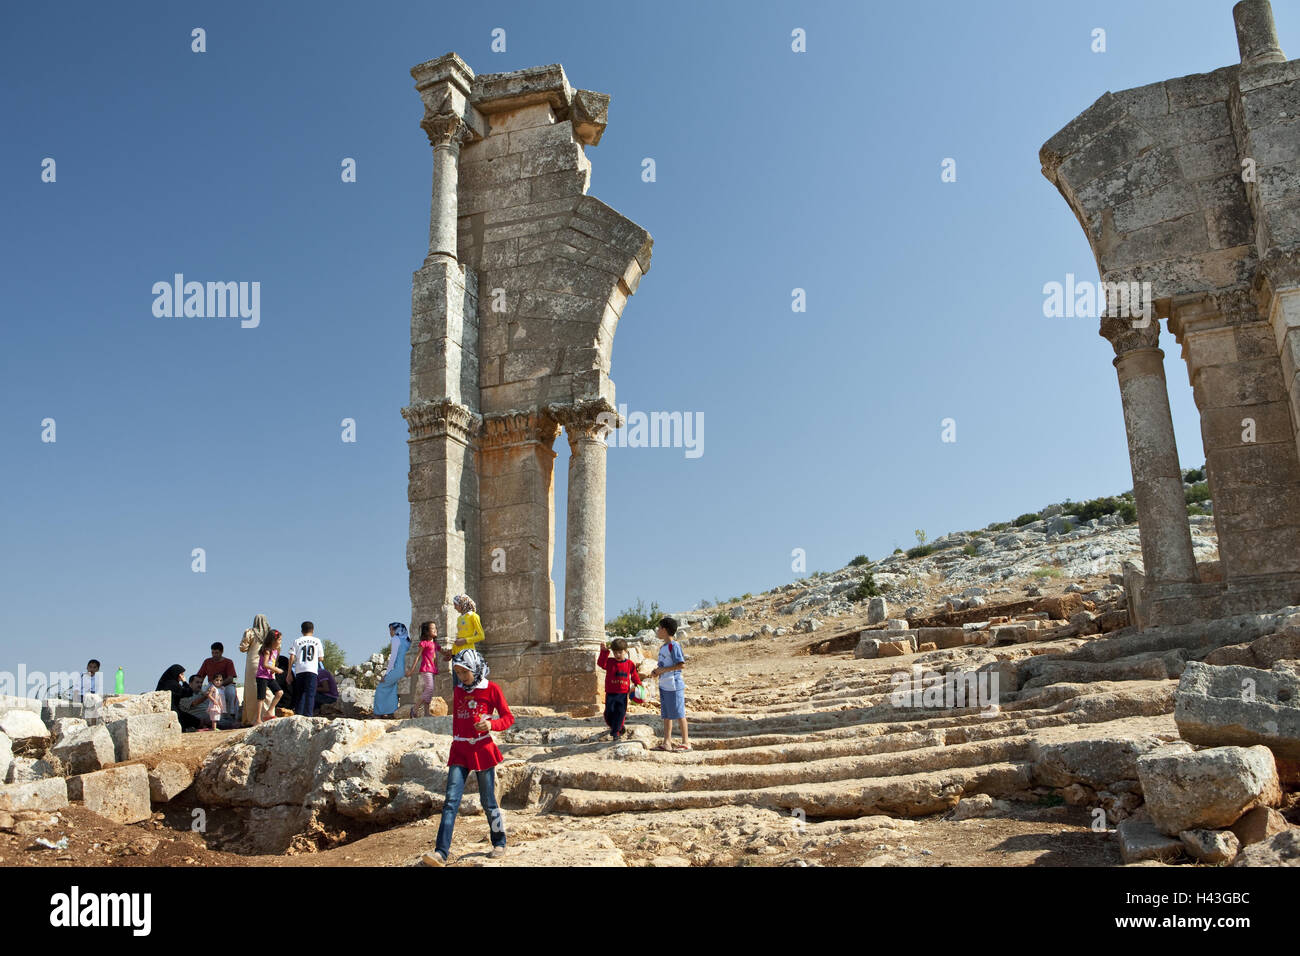 Syria, Qal'at Siman, ruin site, tourist, - Stock Image